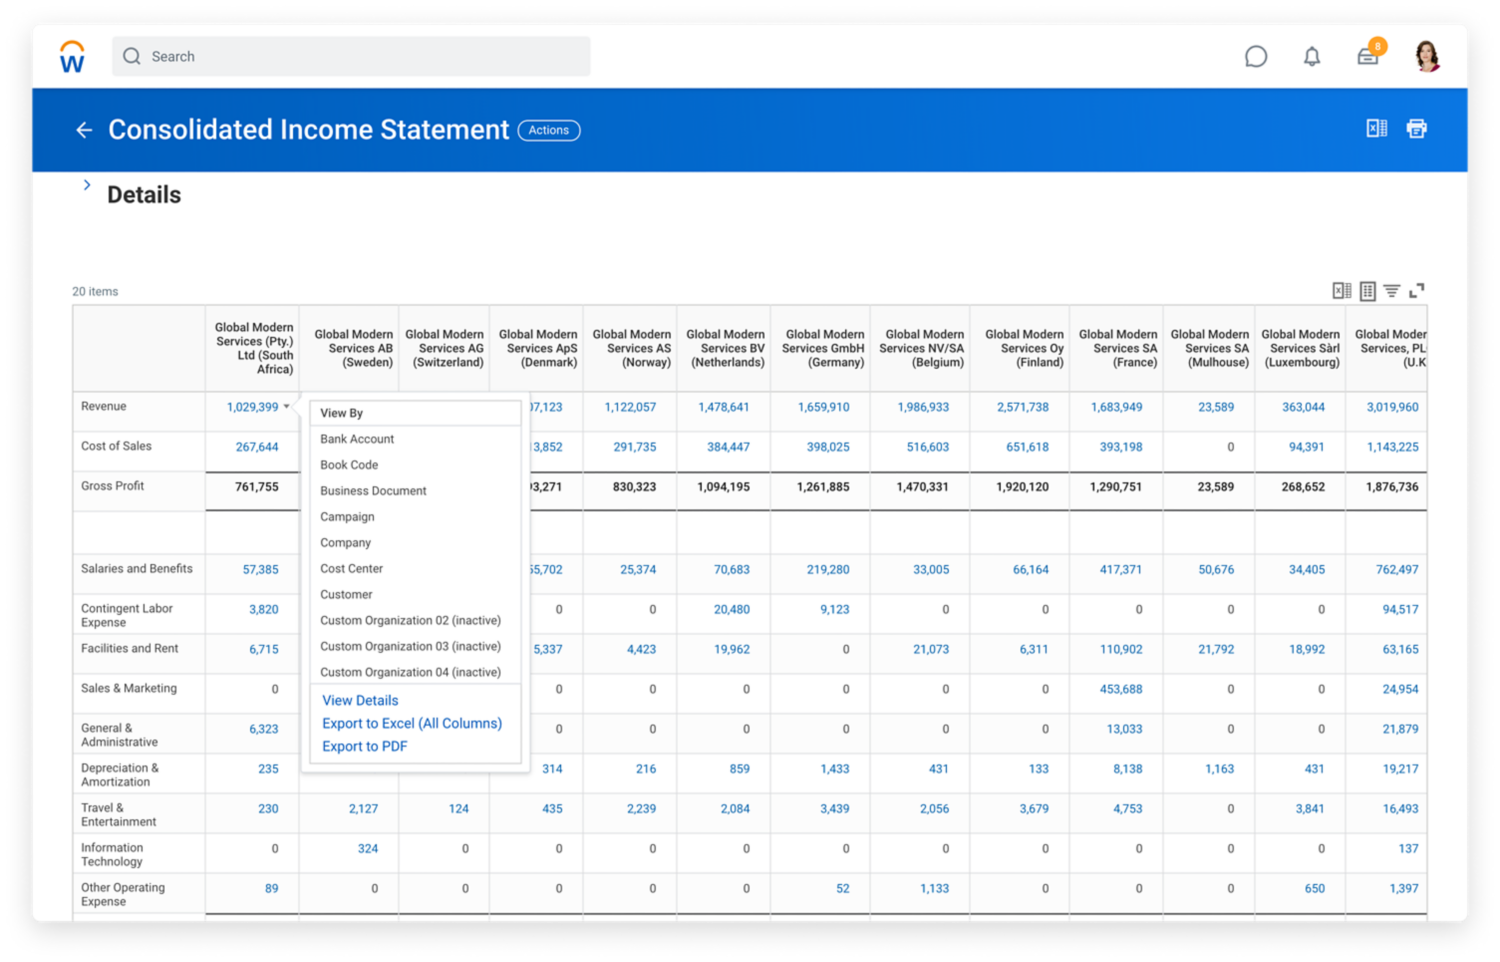 Global financial management consolidated income statement.